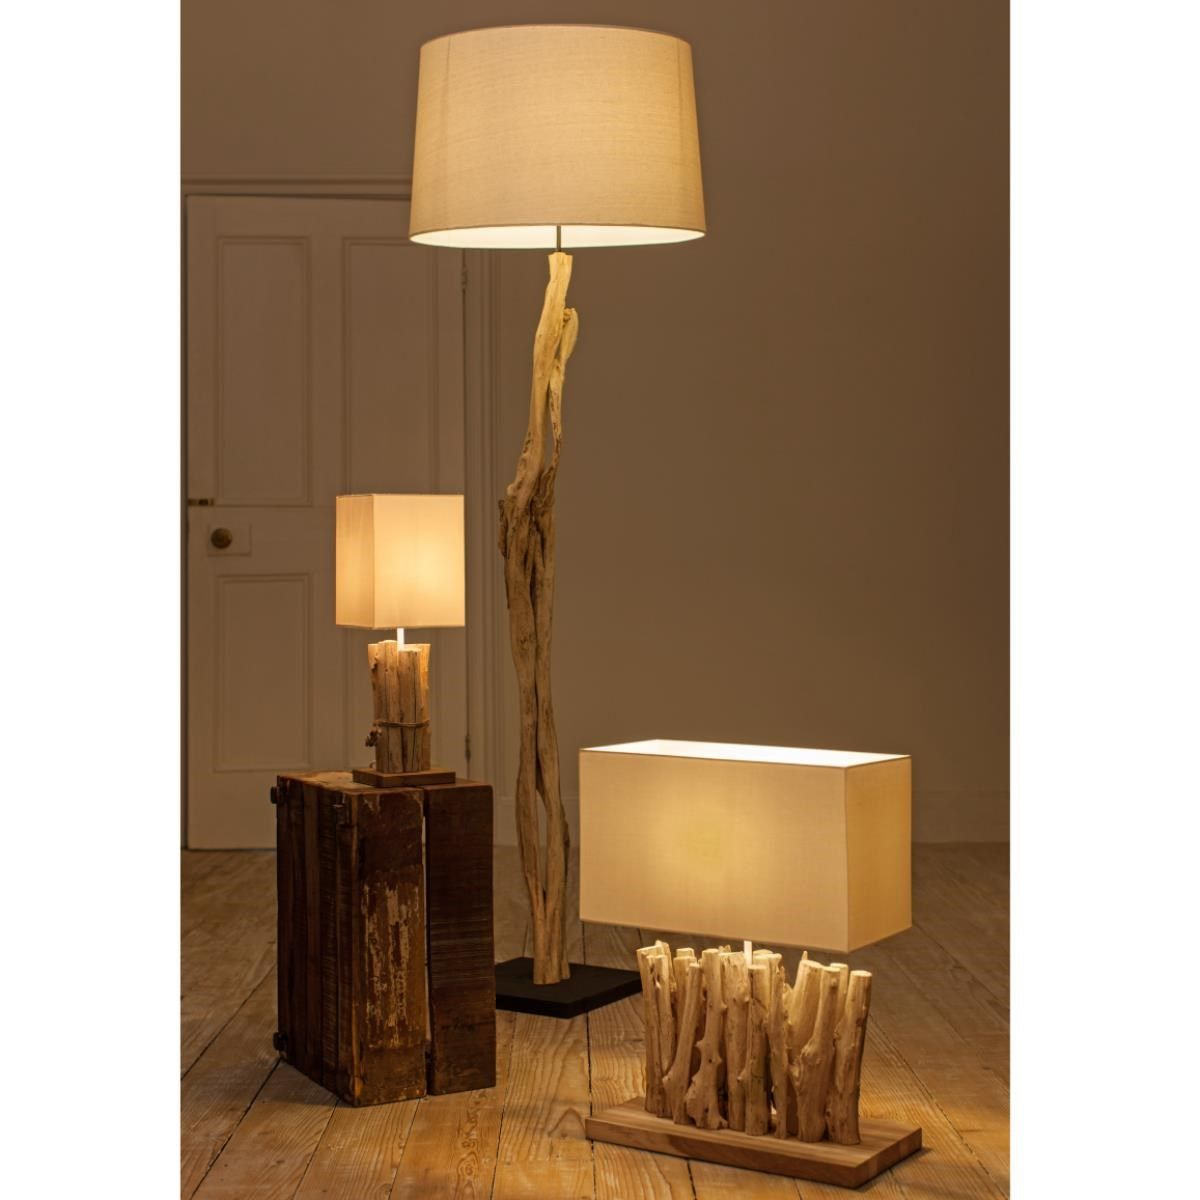 overstock driftwood today shipping lamp product floor home garden free